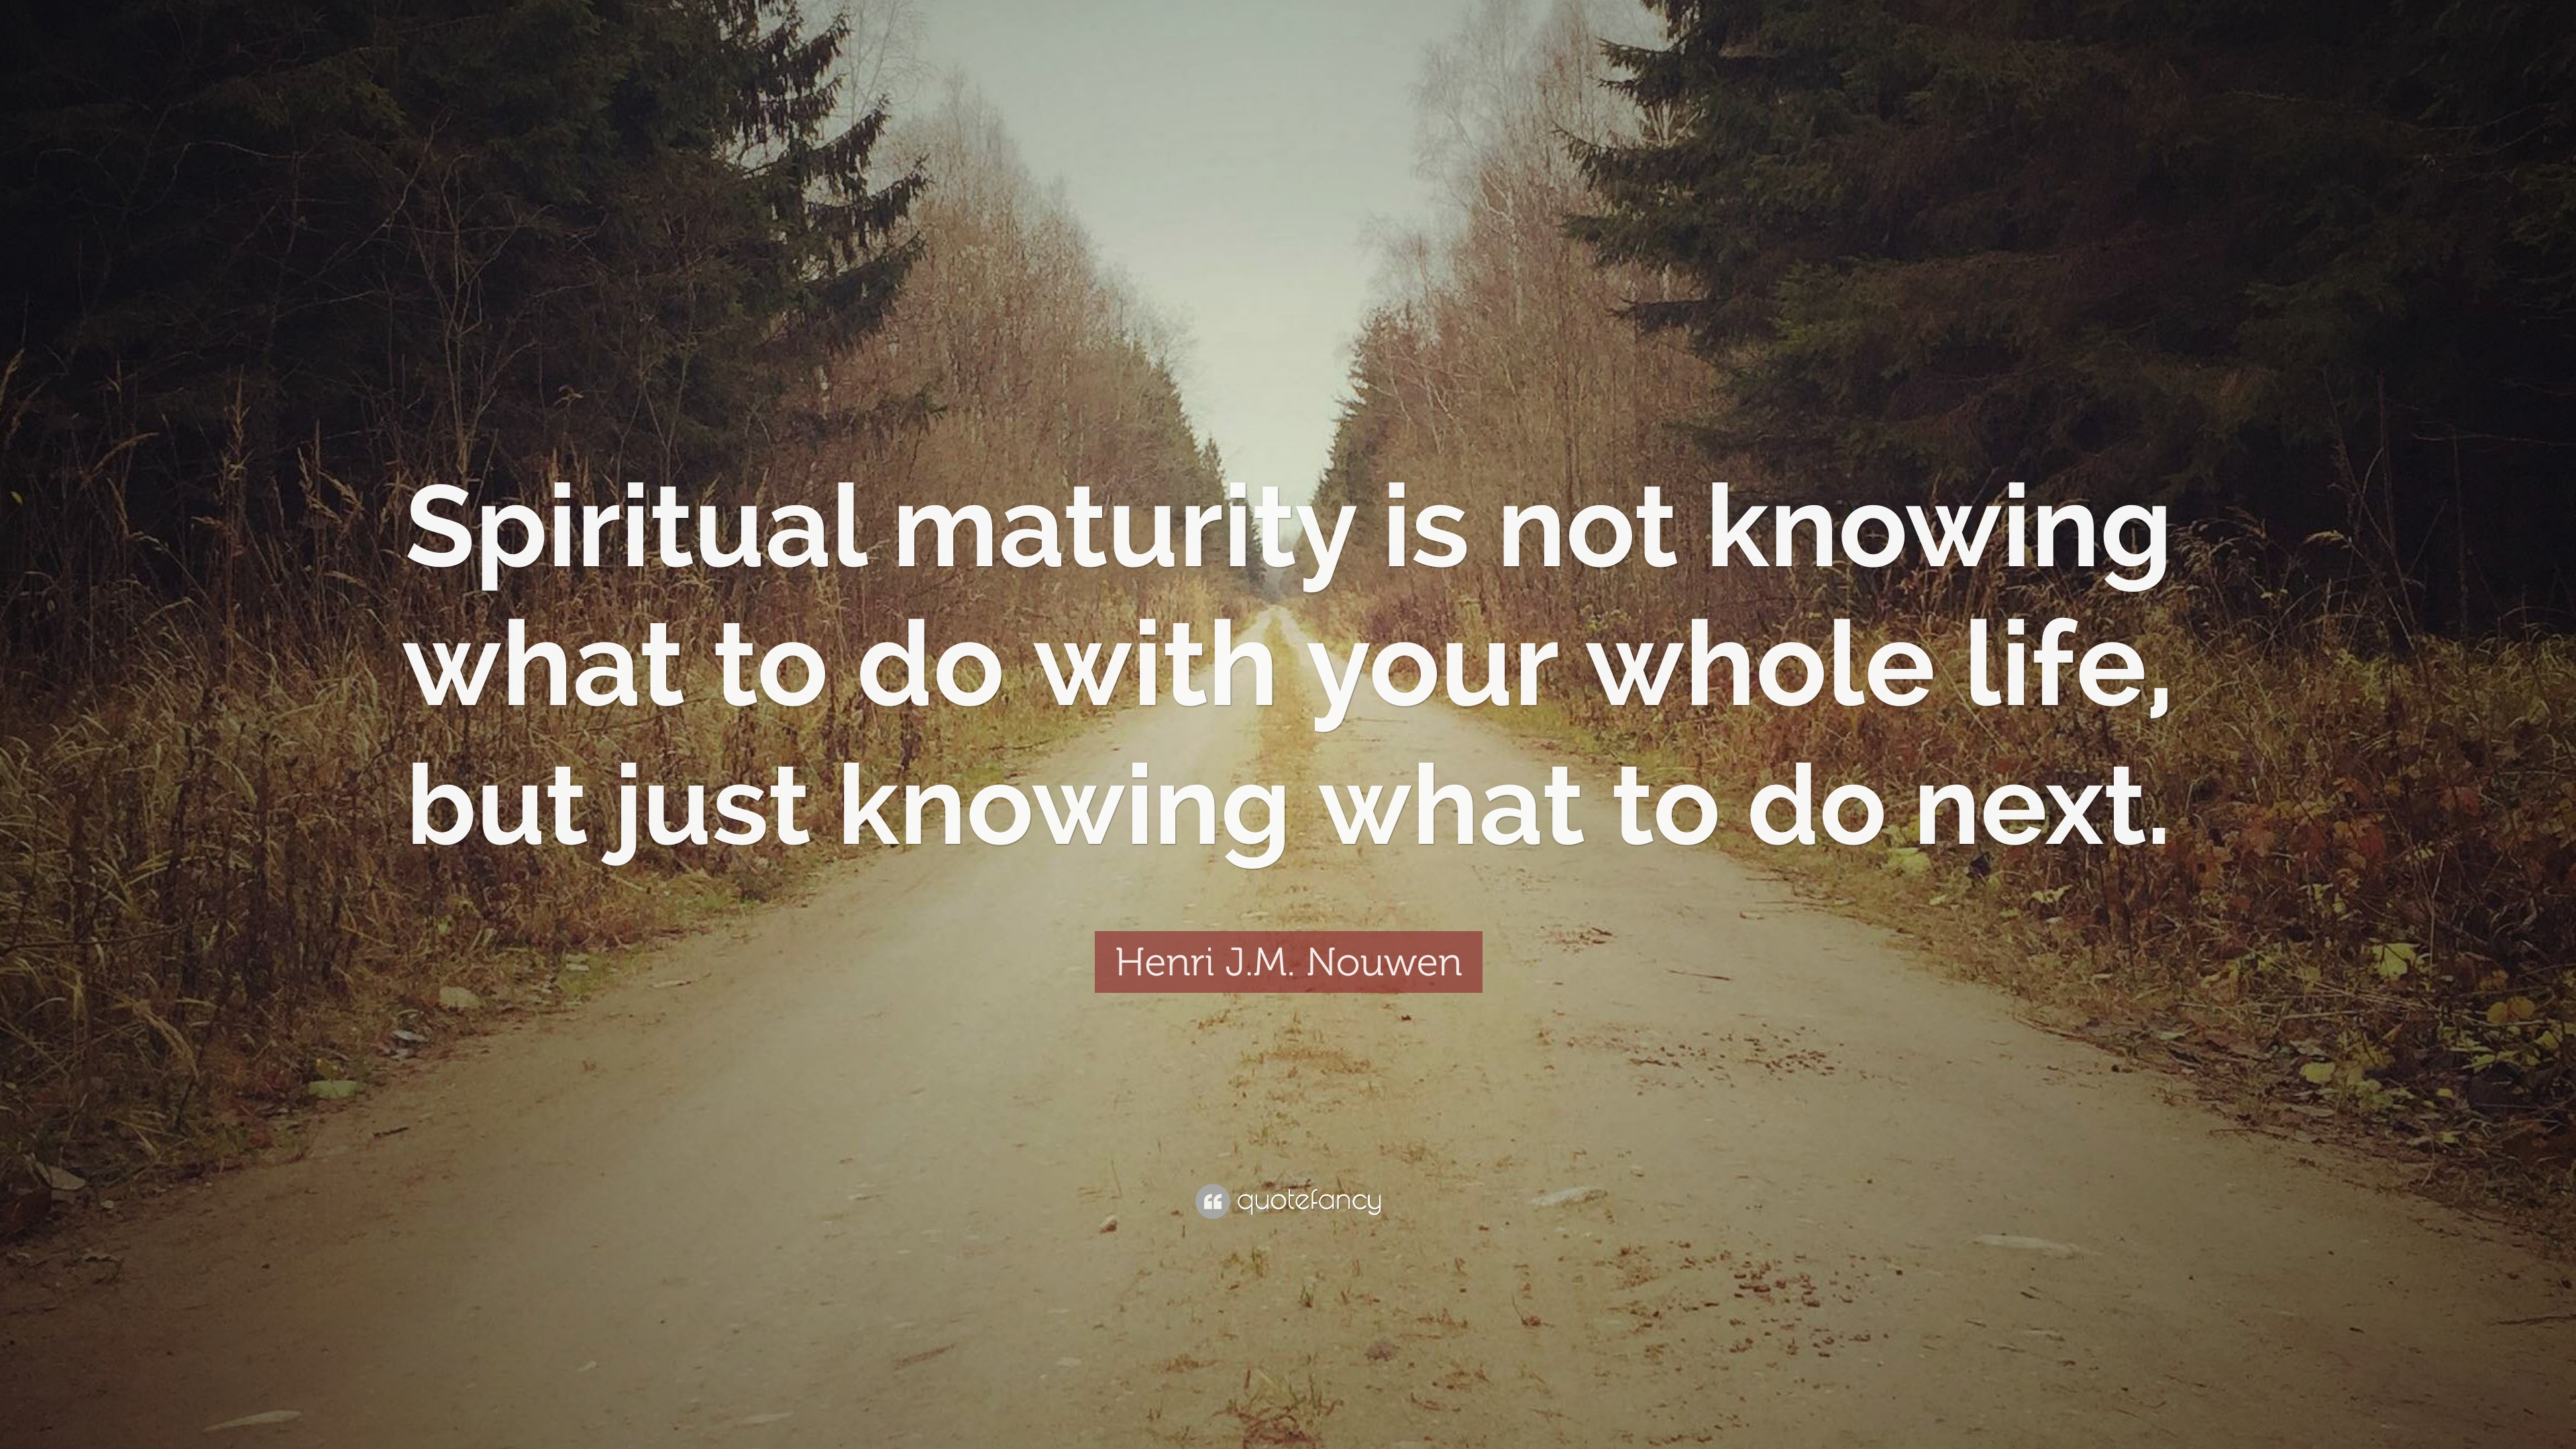 Henri Jm Nouwen Quote Spiritual Maturity Is Not Knowing What To